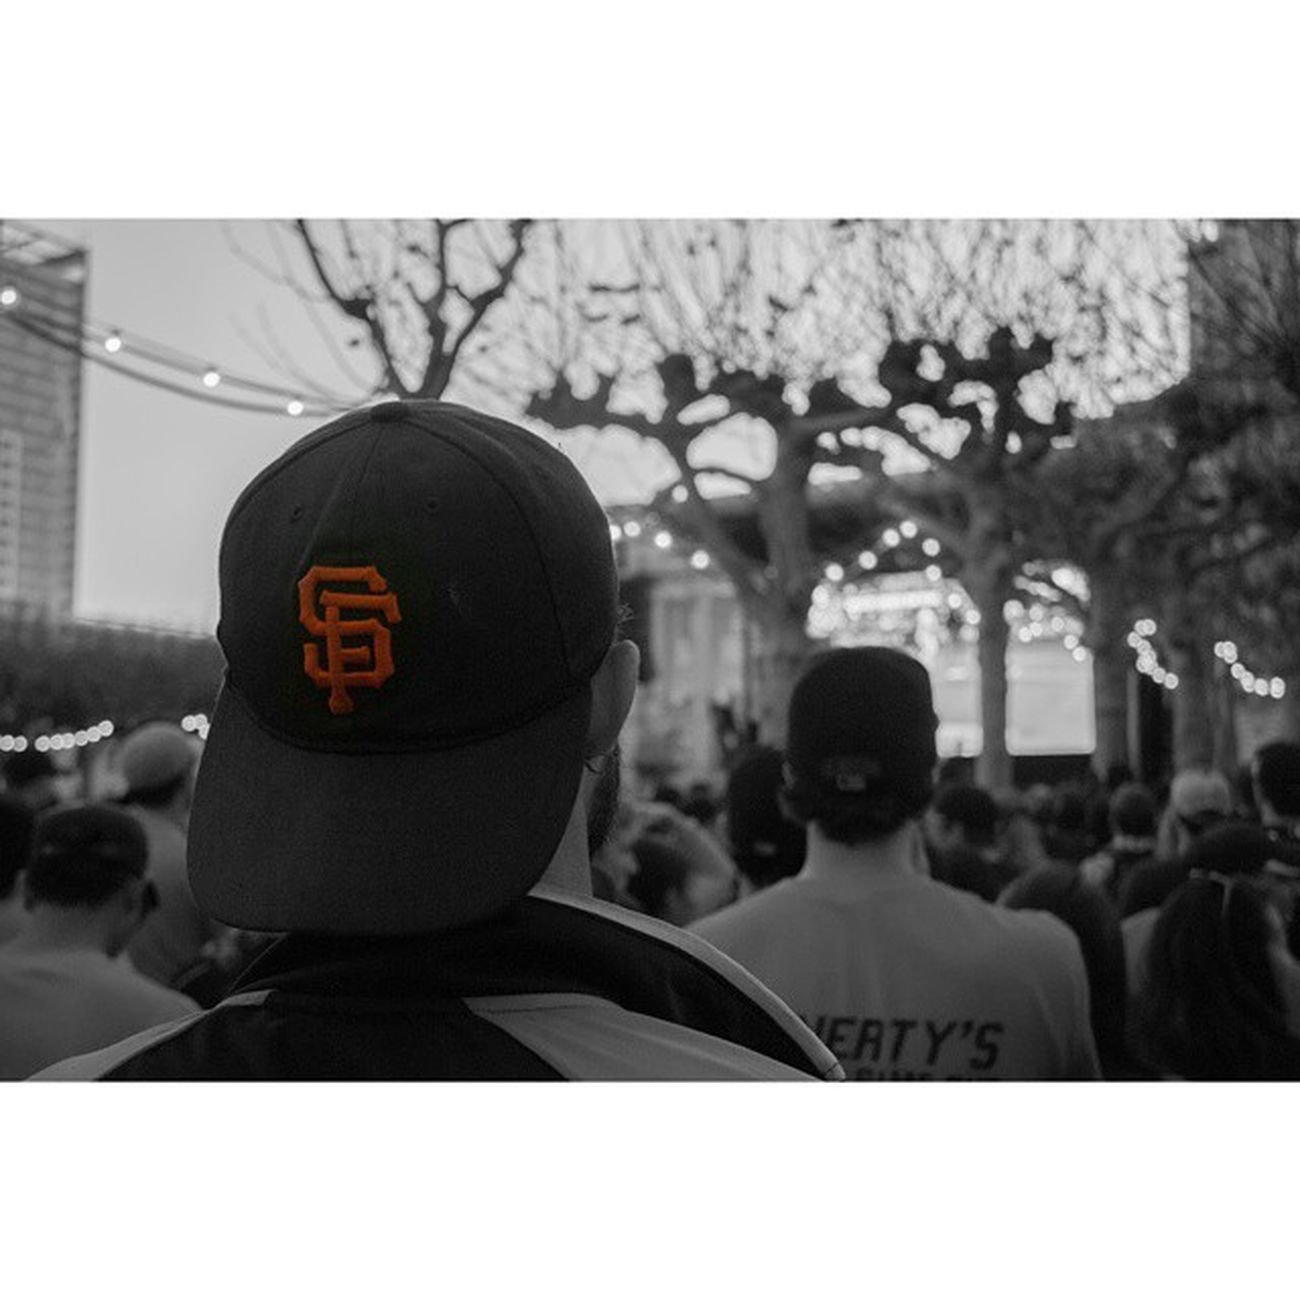 The Giants game of last night. _____________________________________ Letsgogiants Sanfrancisco Giantsgame GiantsNation OctoberTogether Baseball Base Ball Sfgiants Bases Homerun Bat Throw Catch Swing Photooftheday Field Pitcher Firstbase Game Secondbase Thirdbase Inning Baseballbat mitt gloves out sport sports